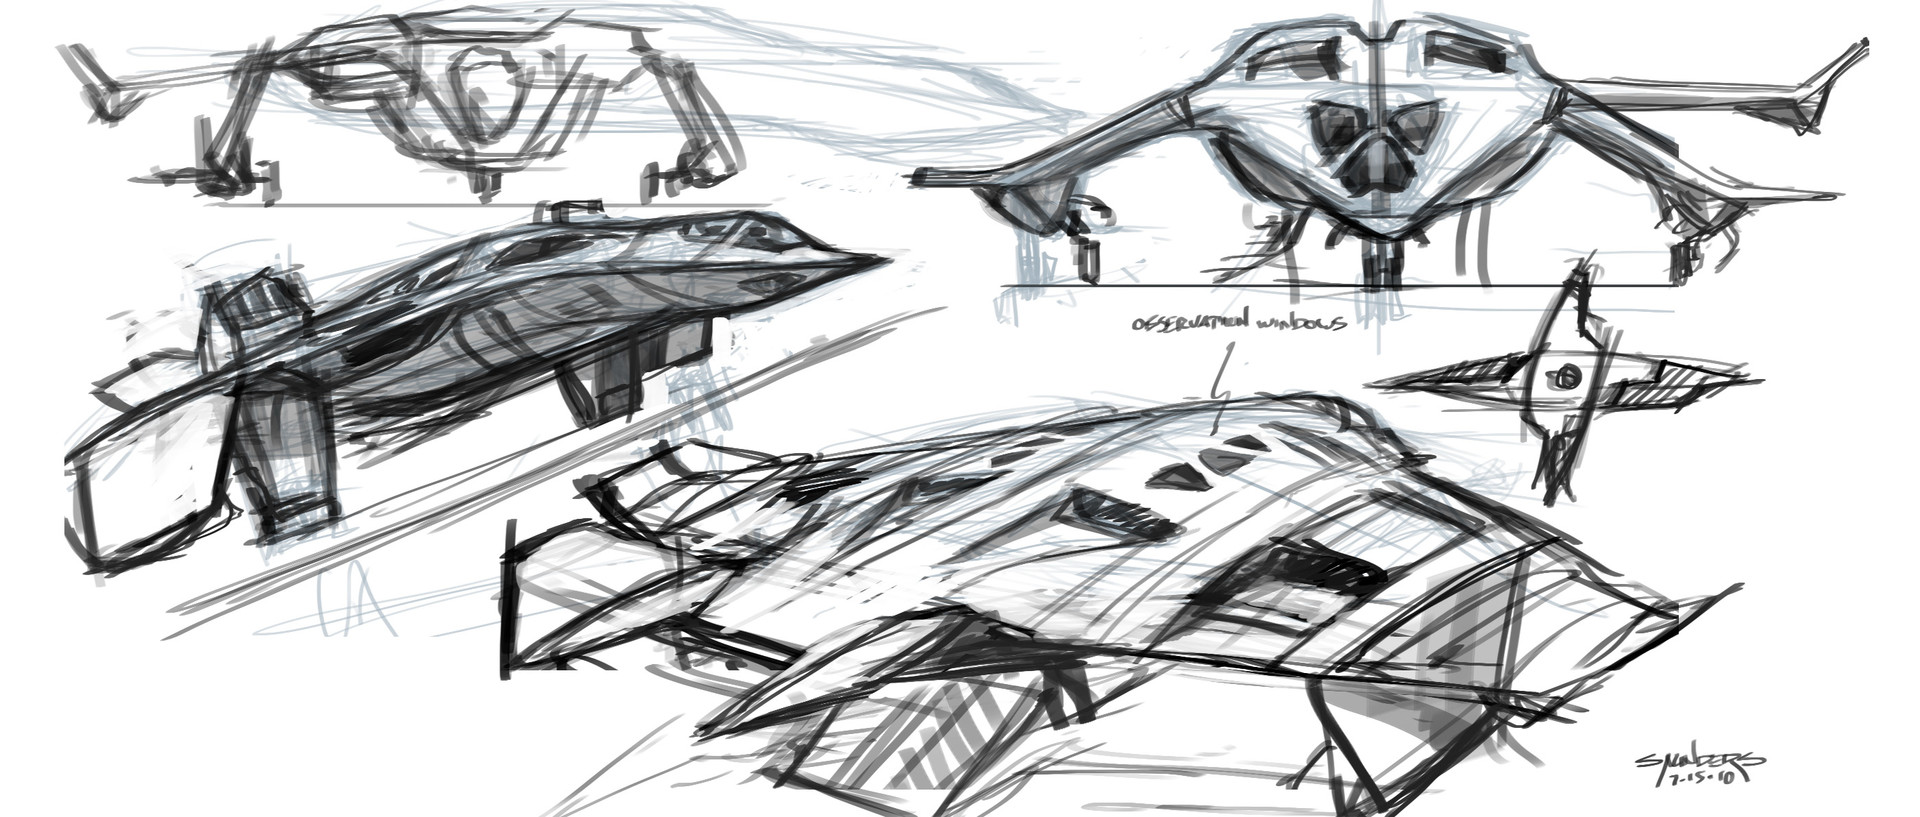 Phil saunders dropshipsketch1